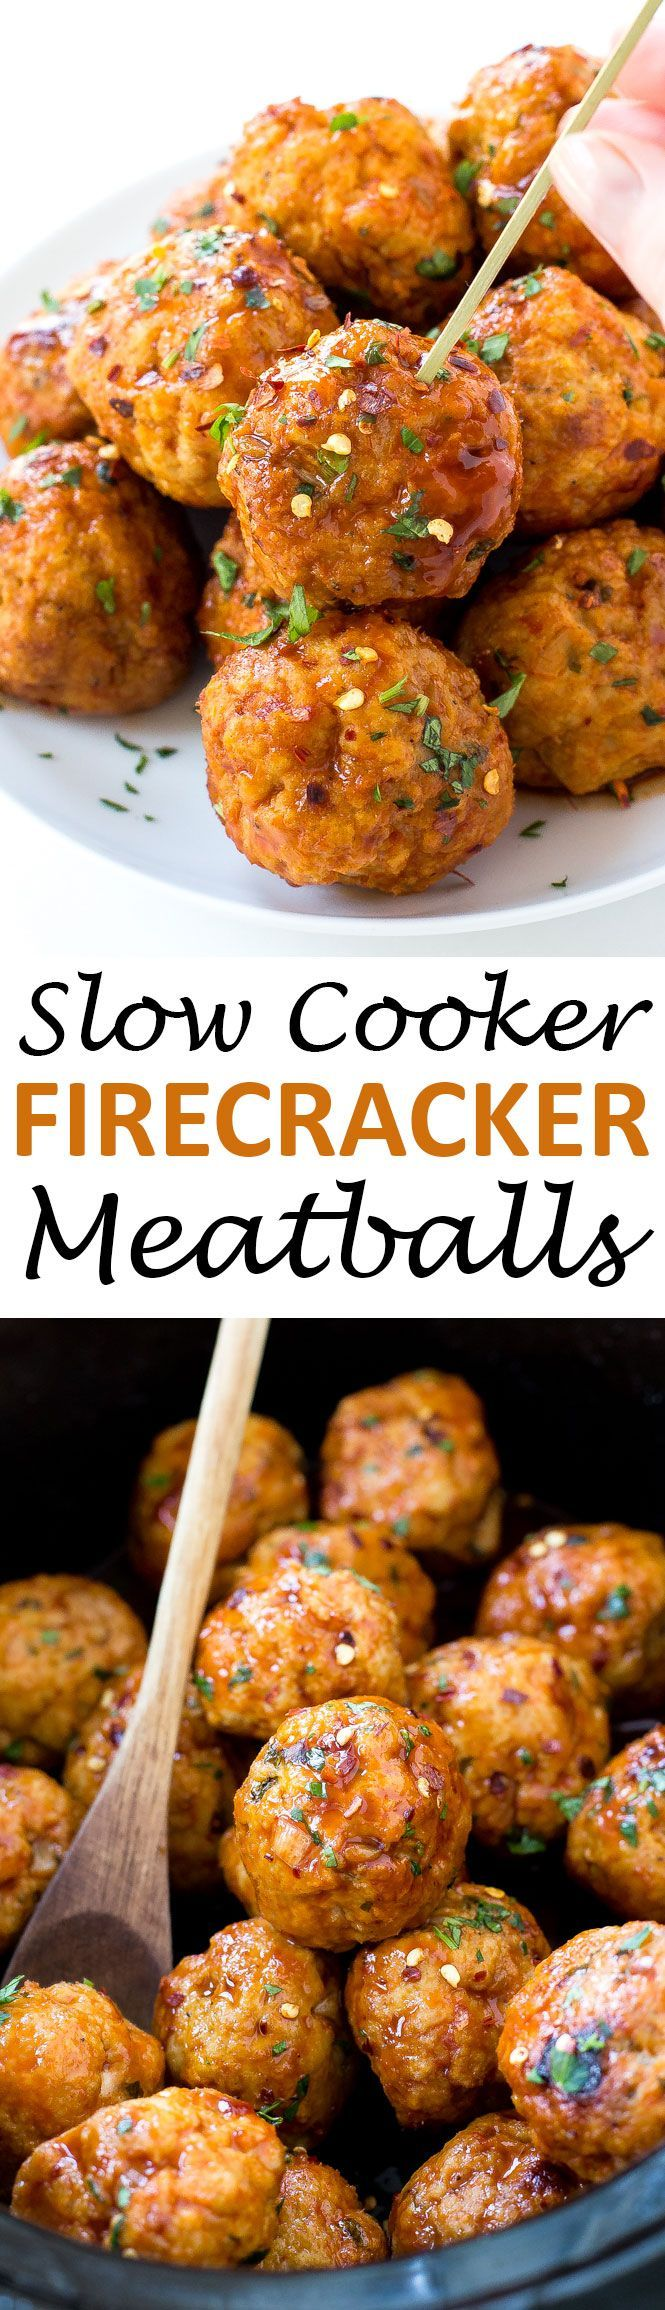 Slow Cooker Firecracker Chicken Meatballs